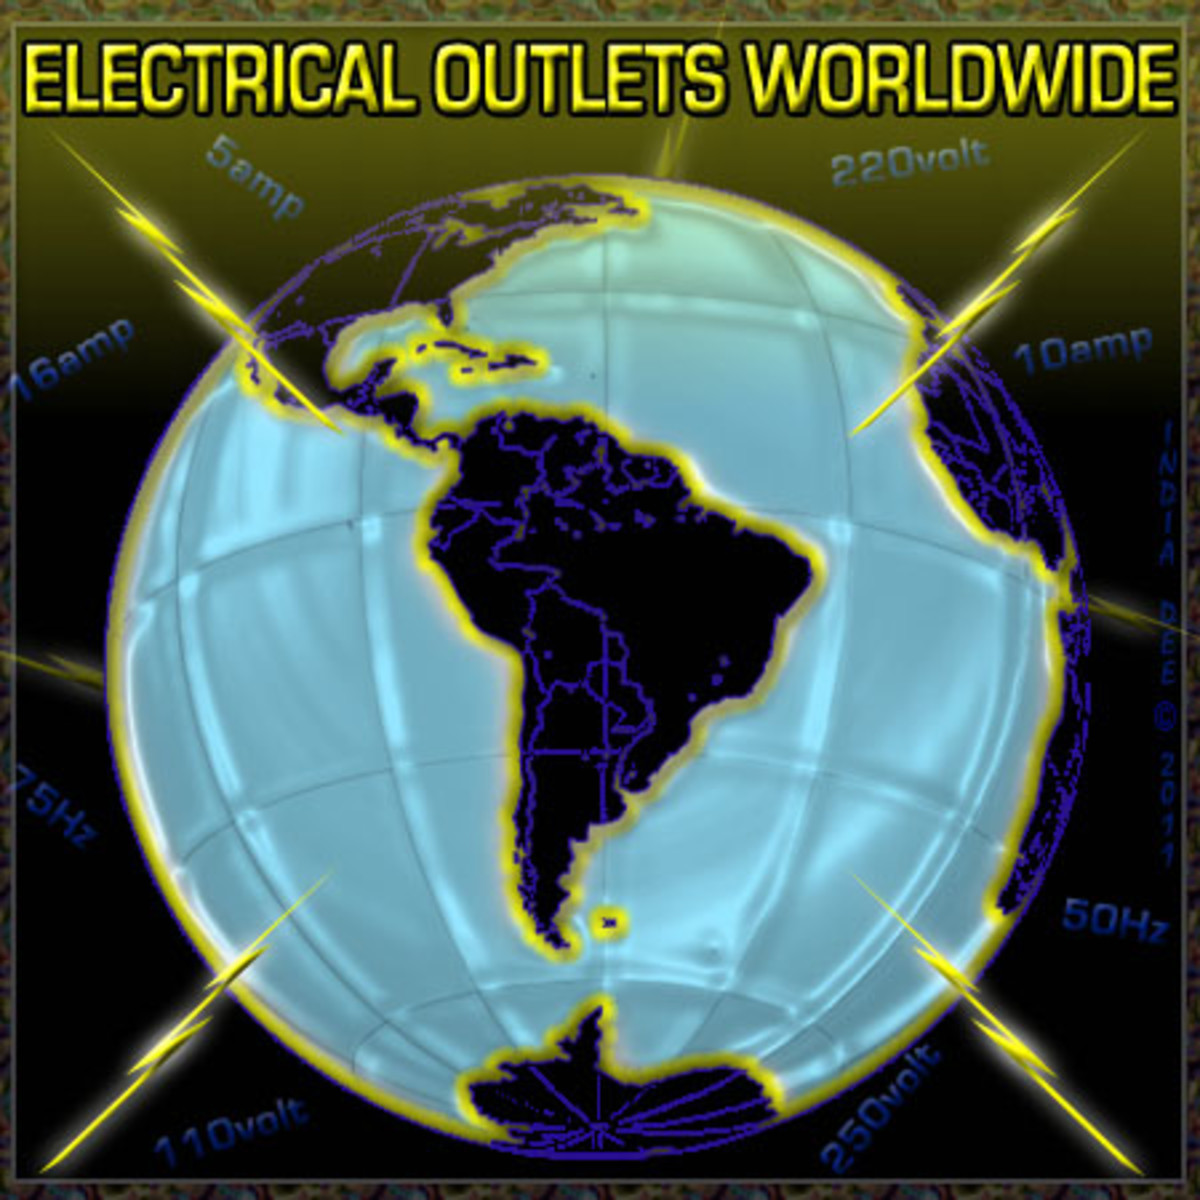 Types of Electrical Outlets used Worldwide